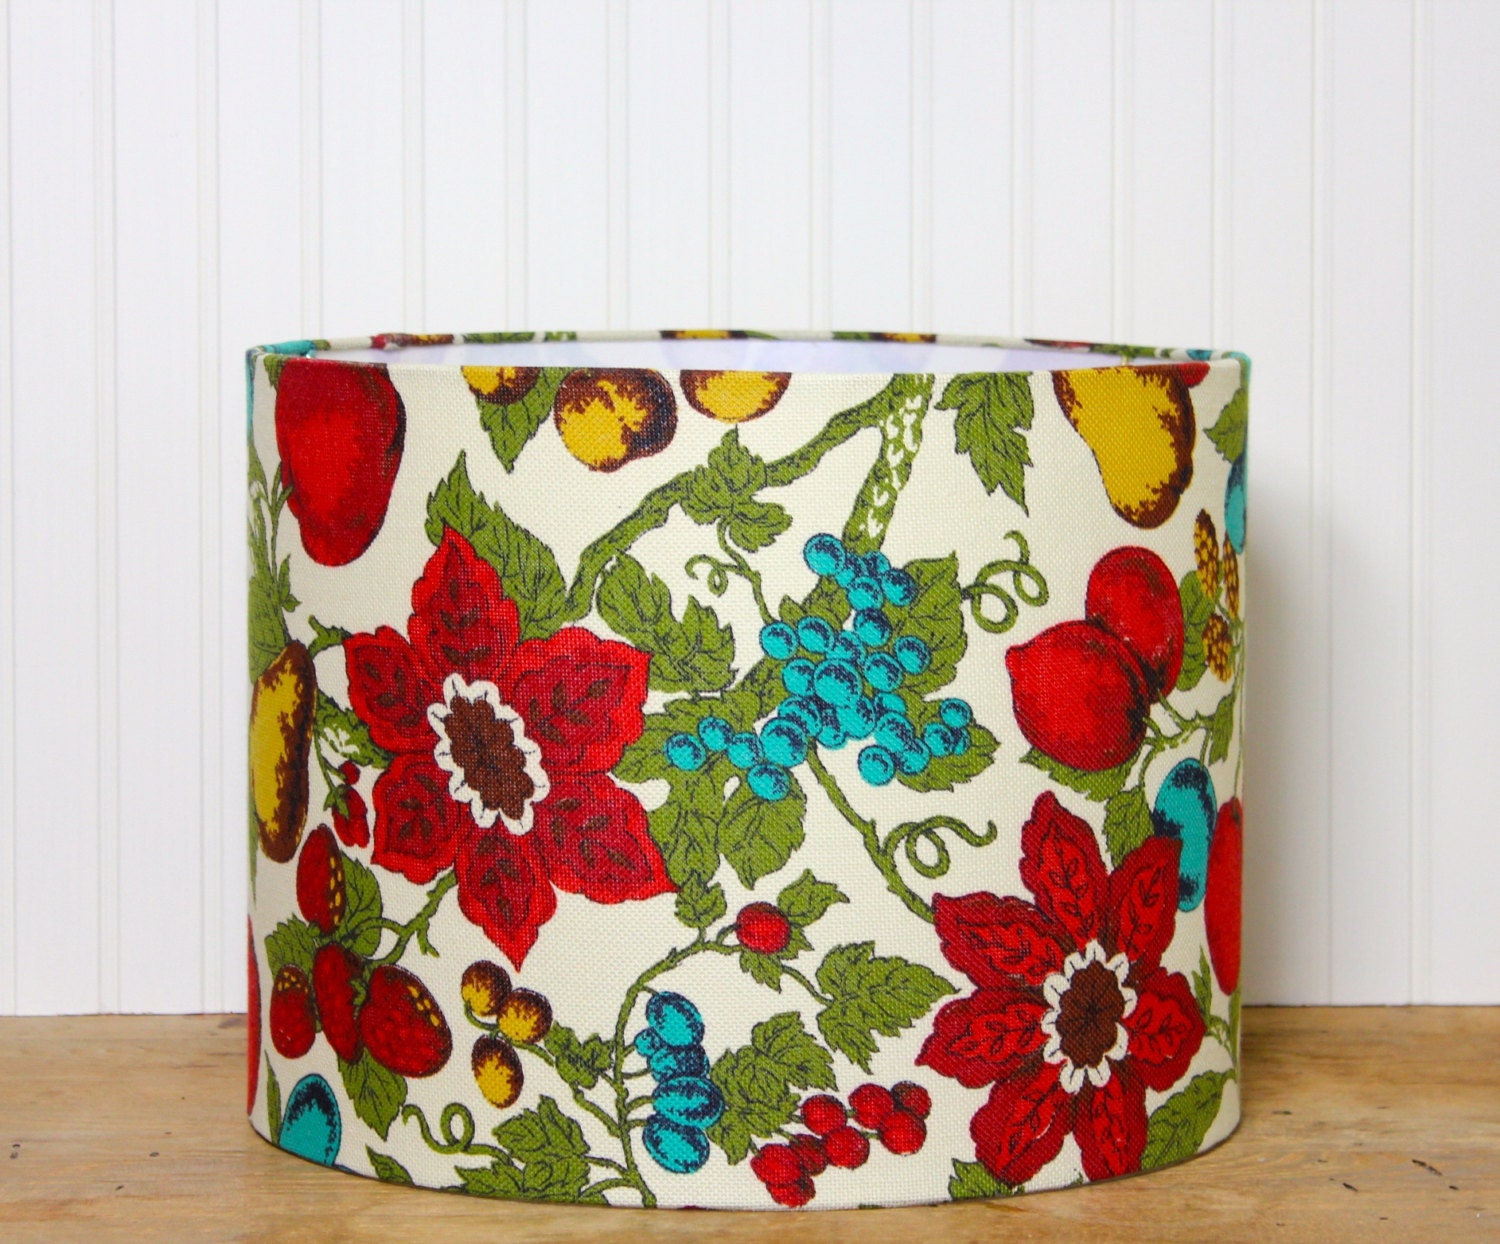 Green Floral Lamp Shade : Floral drum lamp shade vintage red fruit